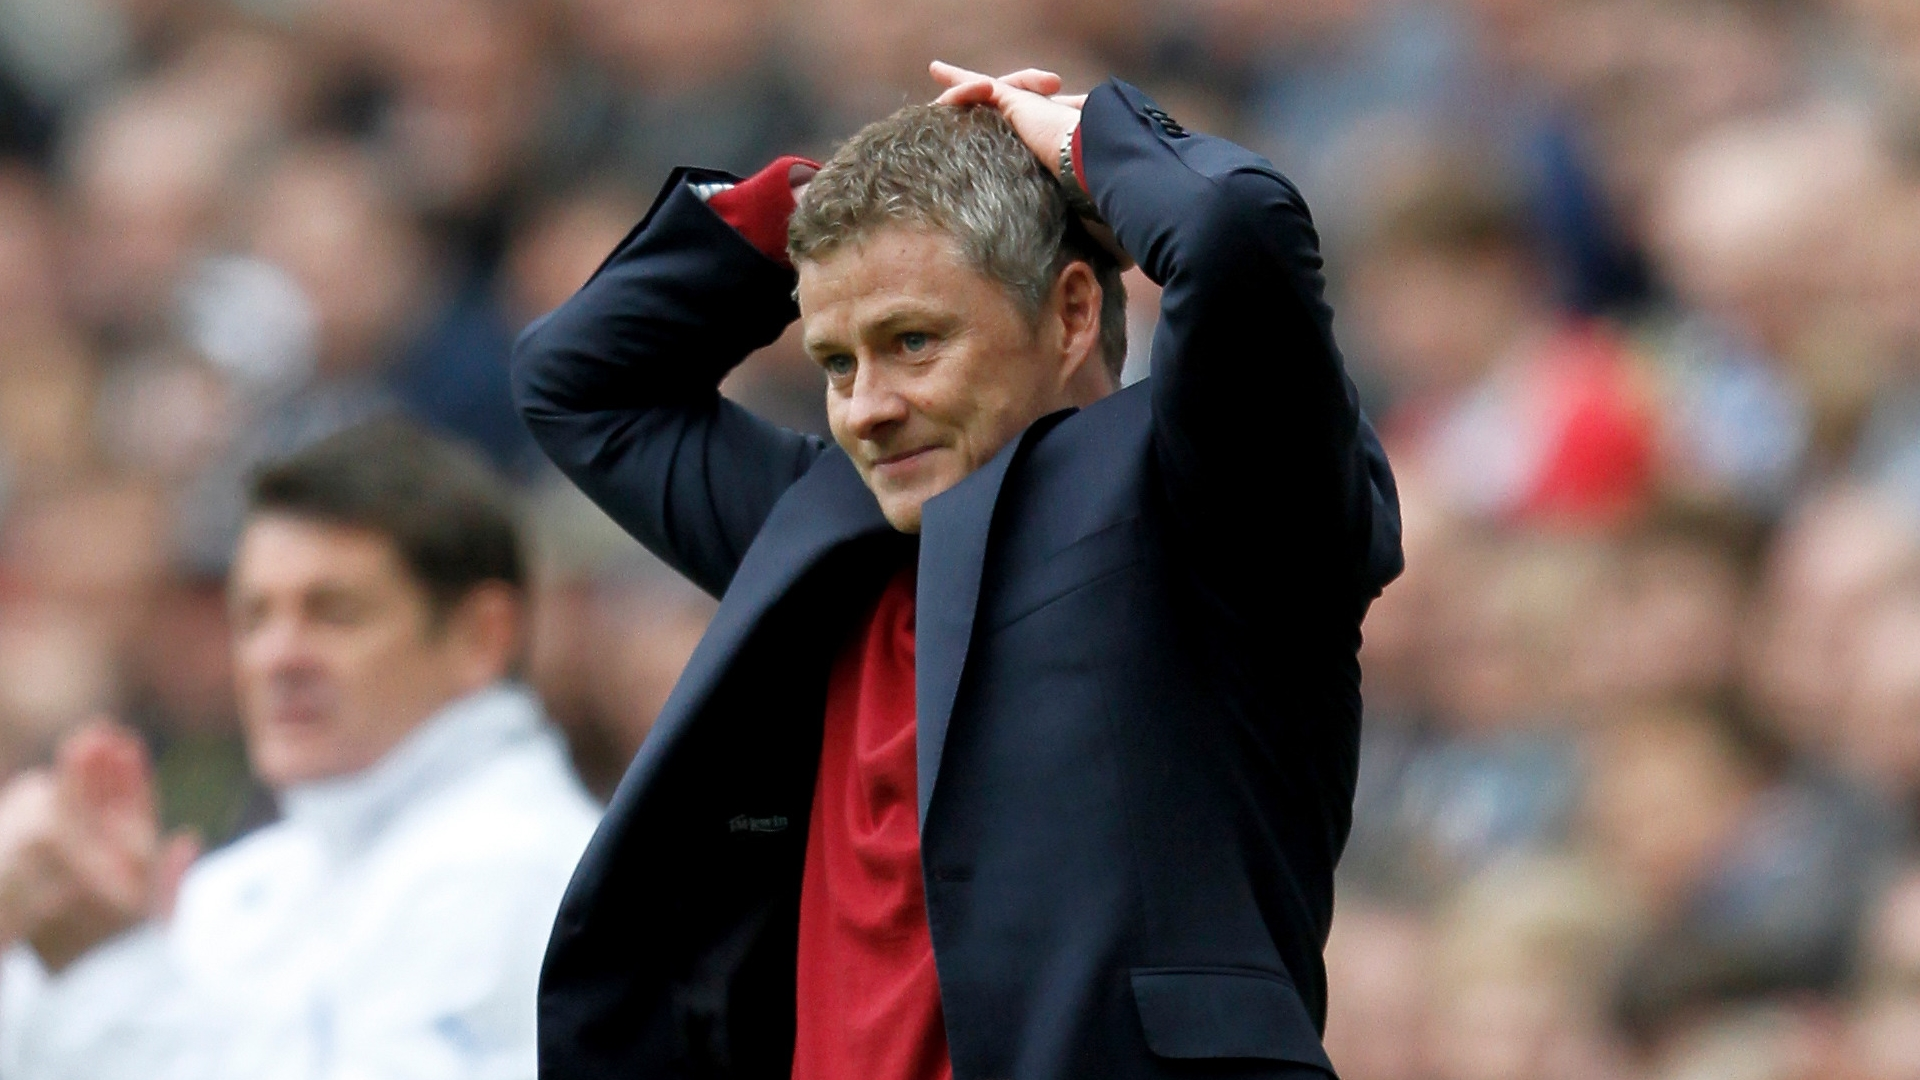 Solskjaer - Manchester United 'almost in driving seat' to finish top four